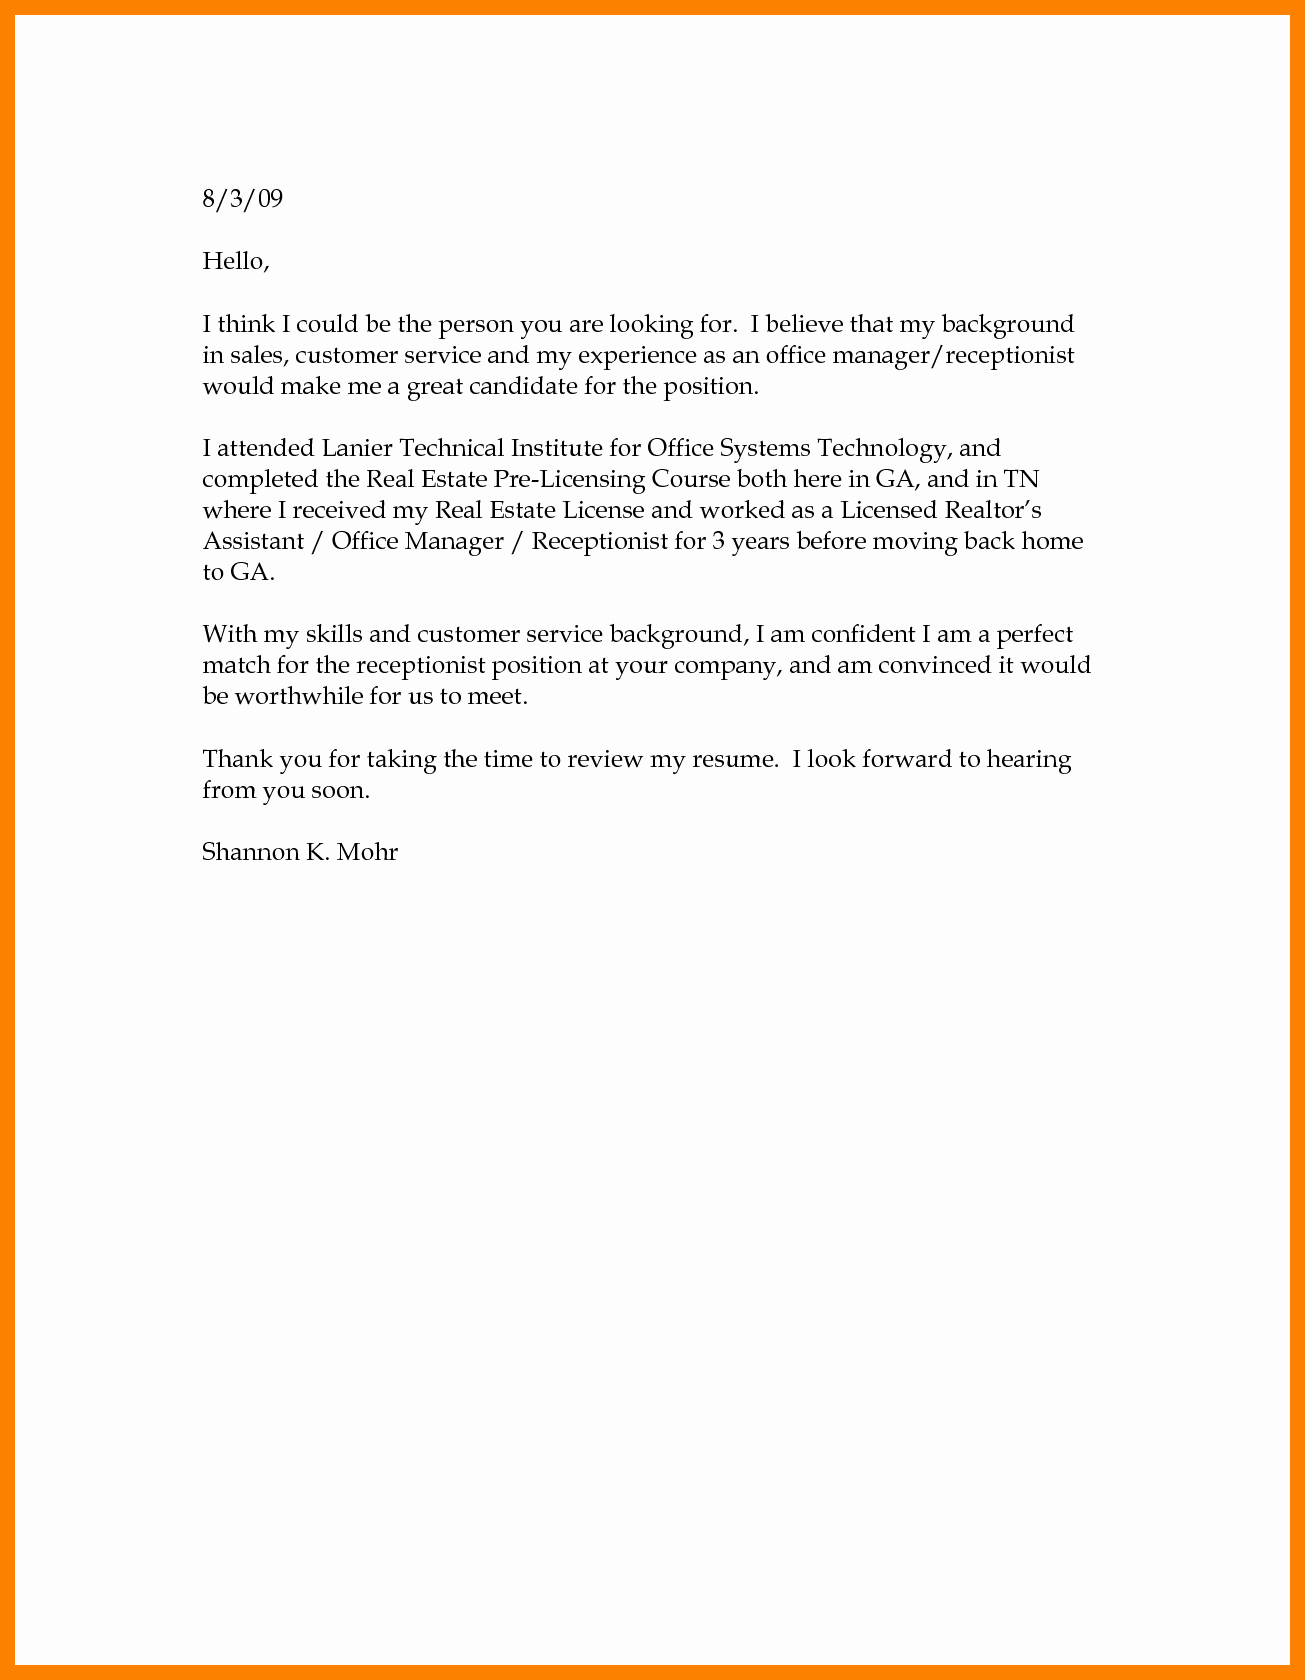 Resume and Cover Letter formats Fresh Basic Cover Letter Structure